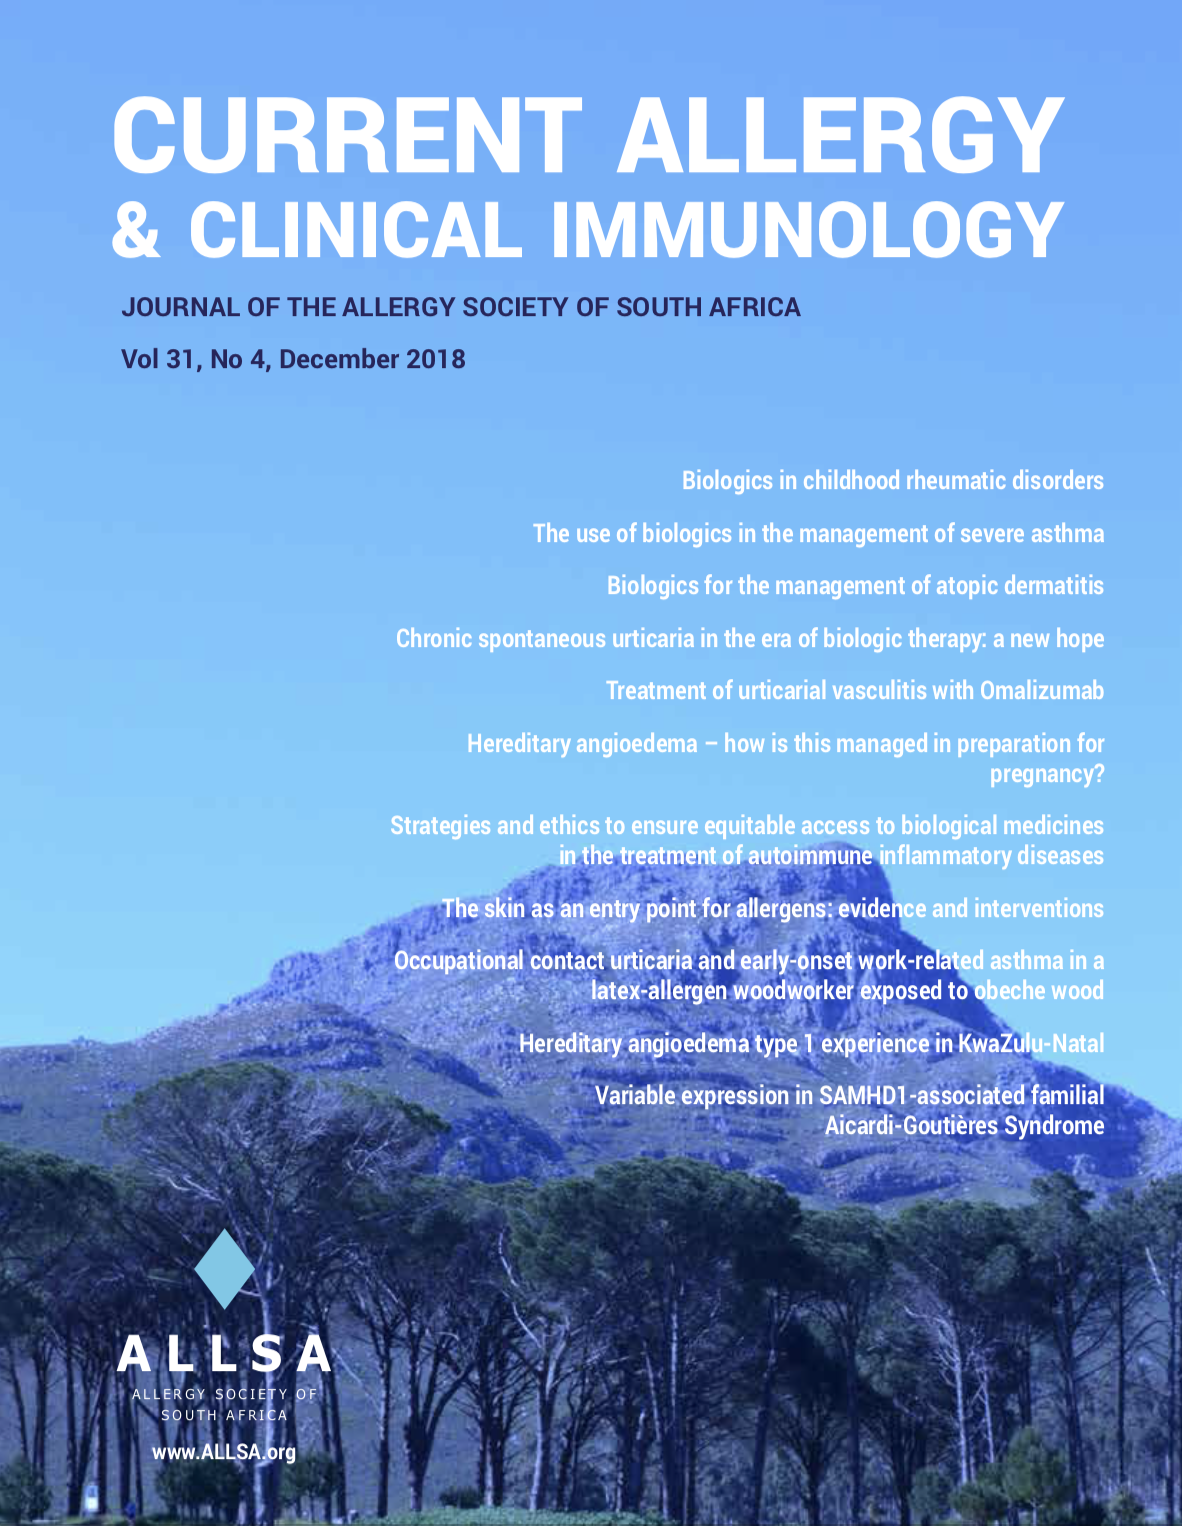 Current Allergy and Clinical Immunology Journal 2018 – December